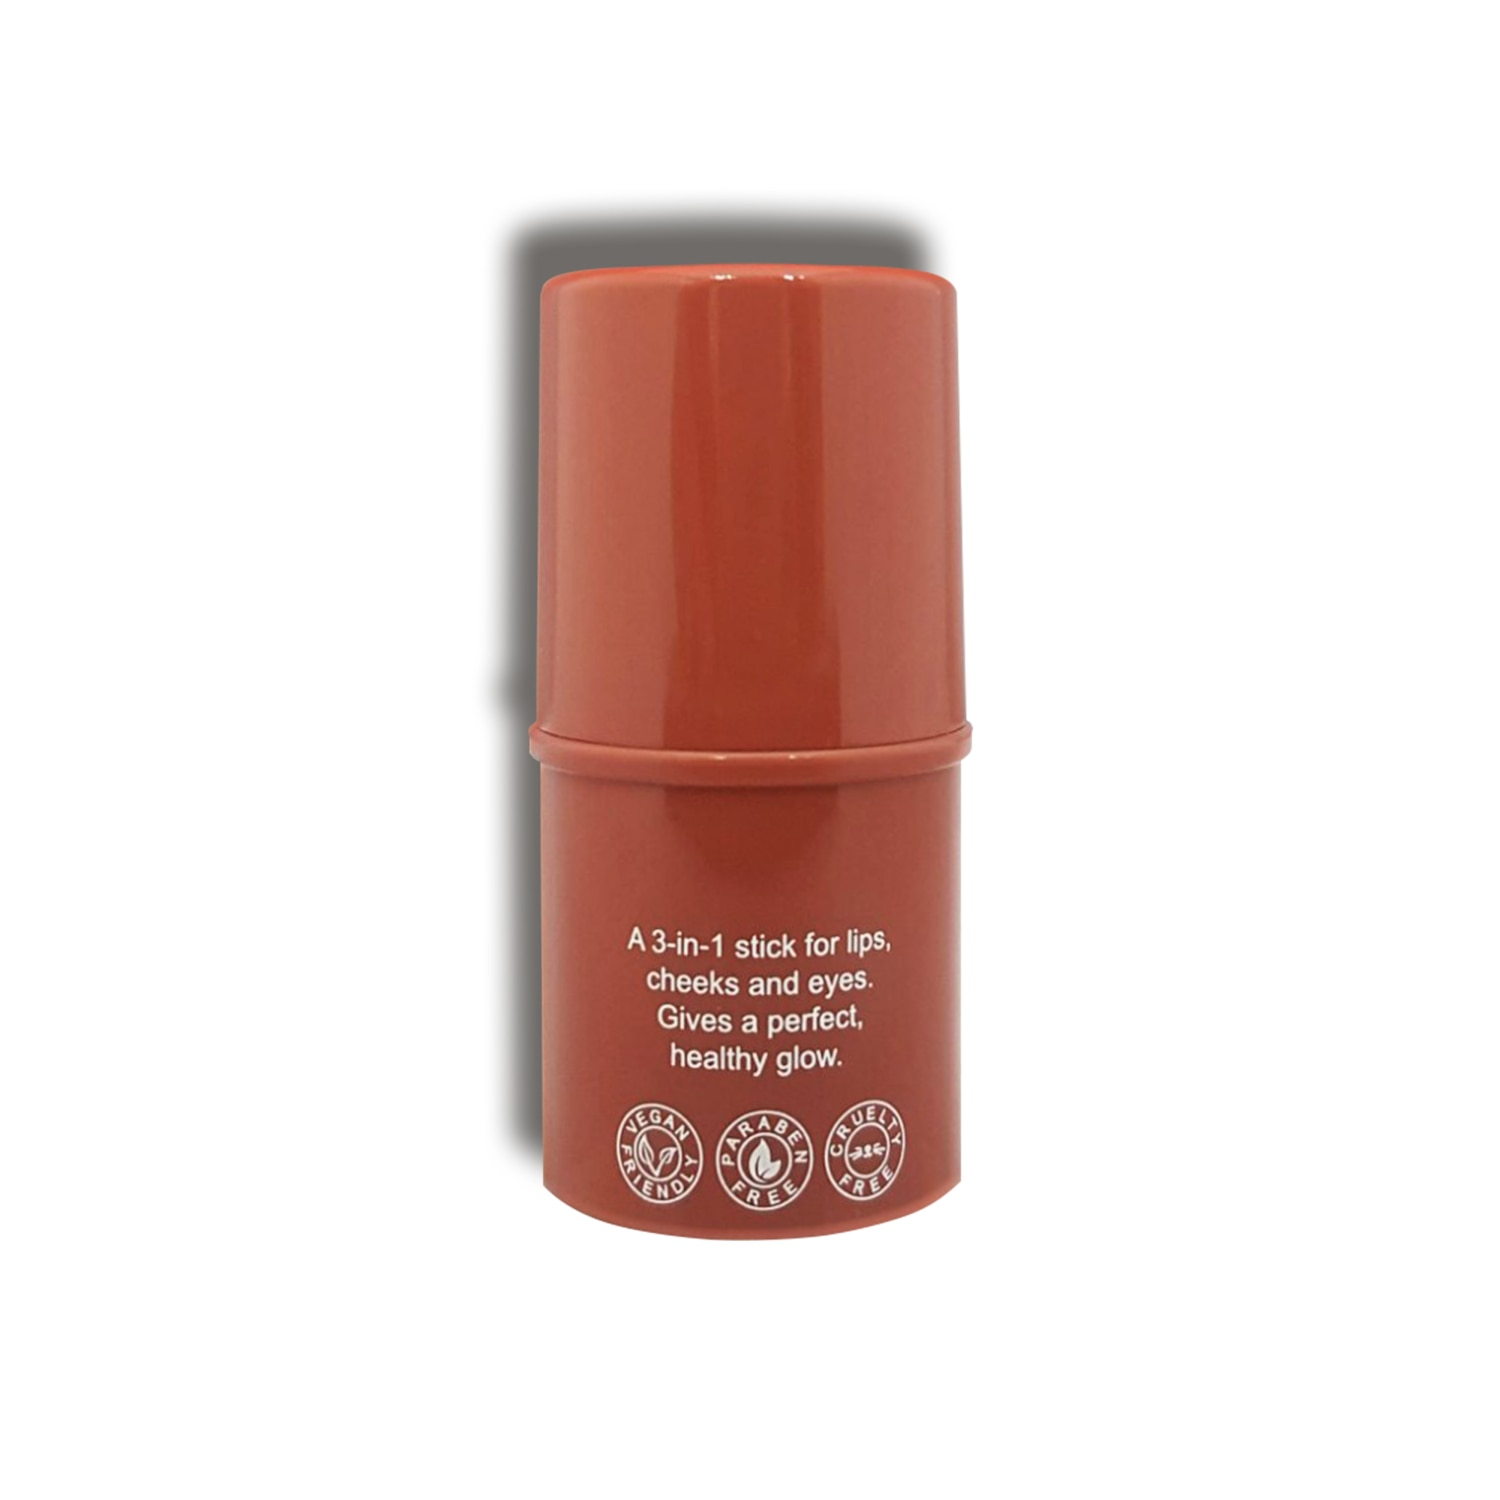 NICHIDOMineral Multi Stick With Collagen Oh Lala 5.5 G,Foundation